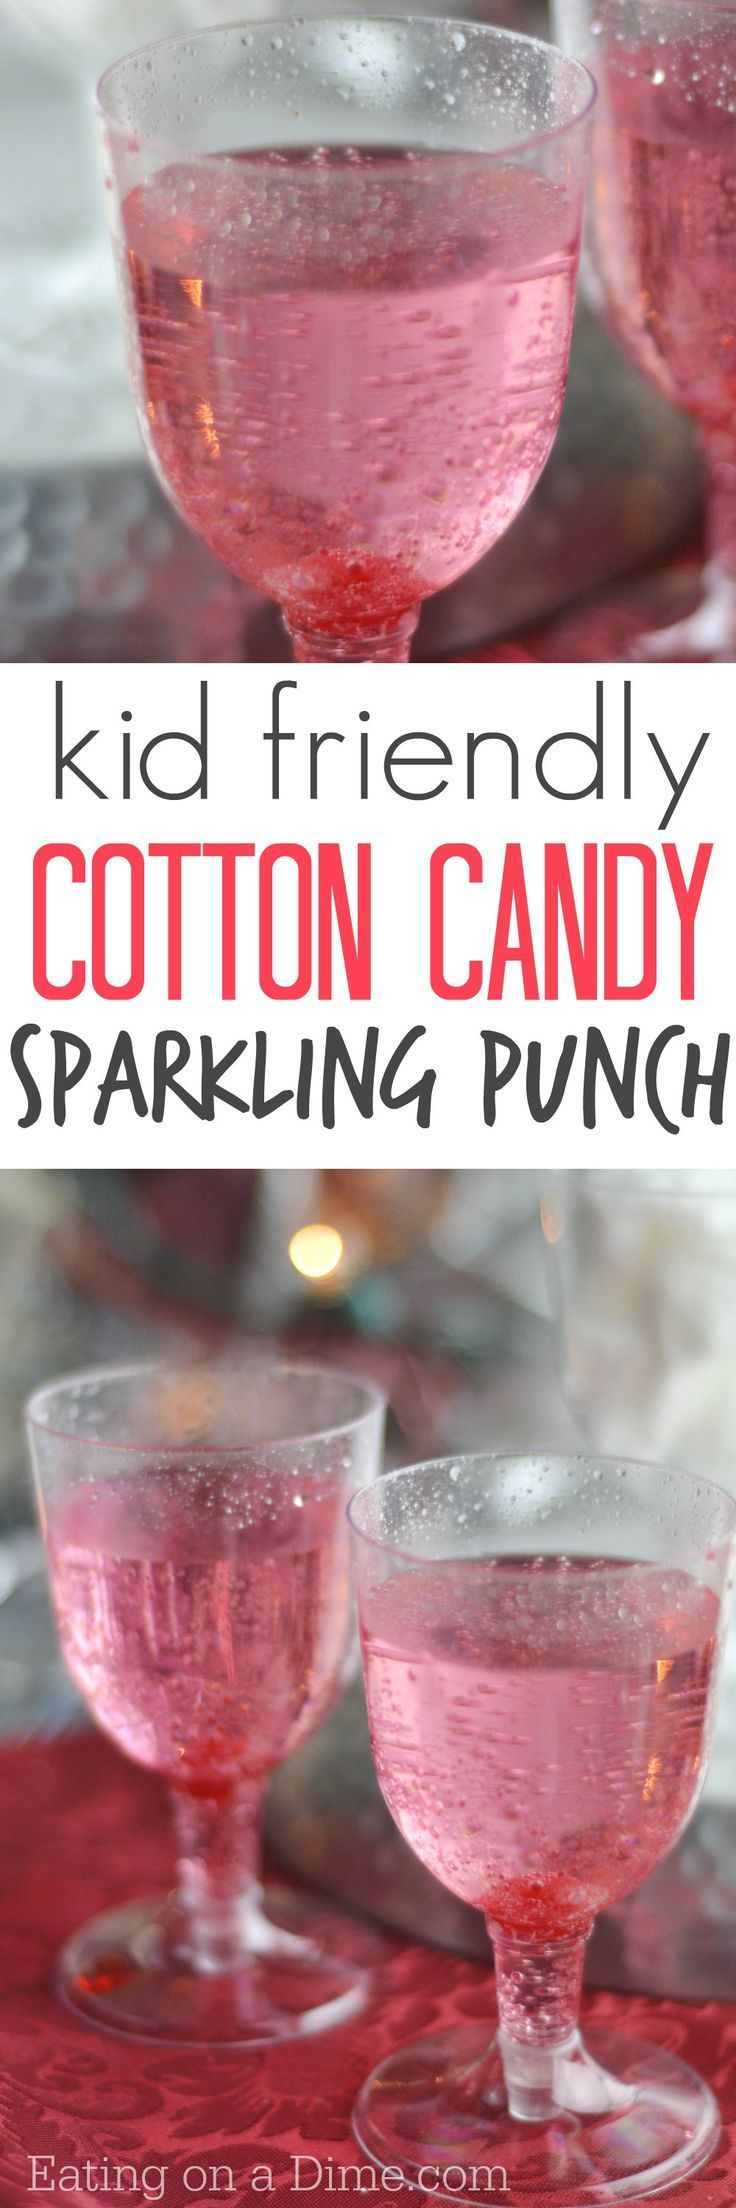 Alcoholic Friendly S Cotton Candy Drink